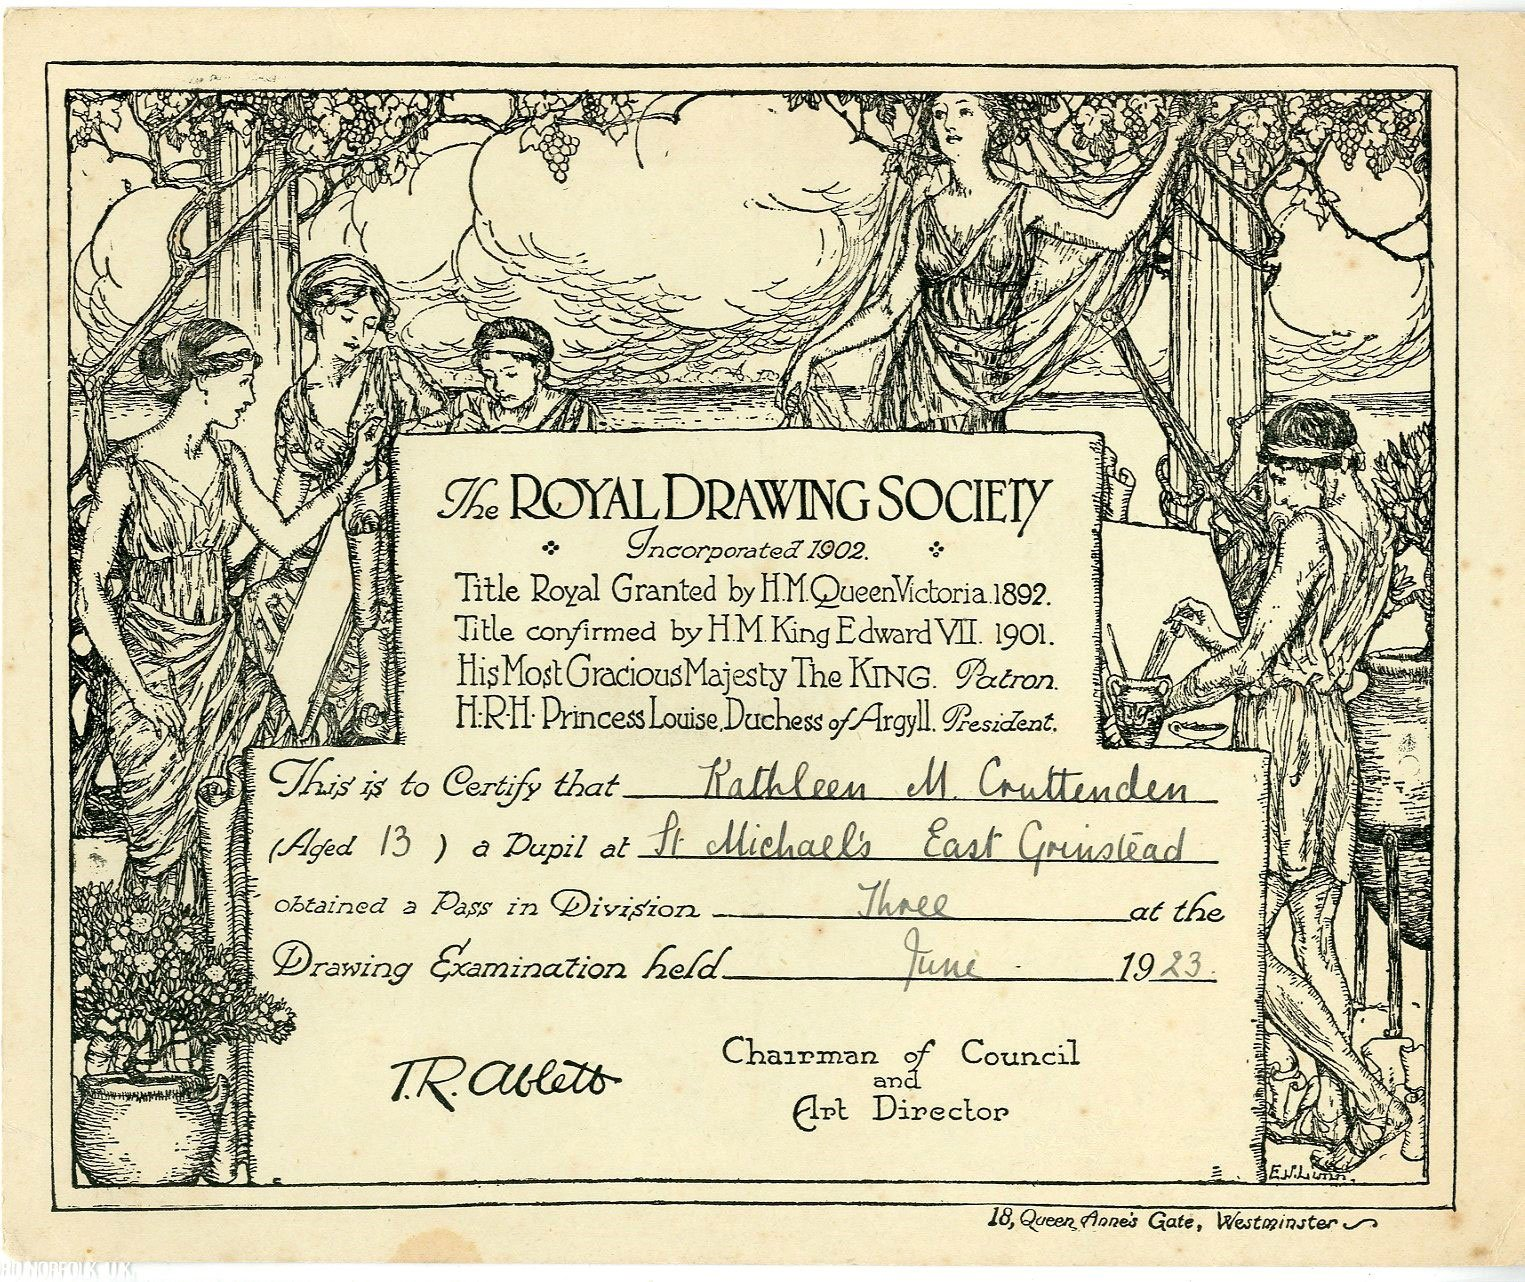 Royal Drawing Society Certificate For Kathleen M Cruttenden 1923